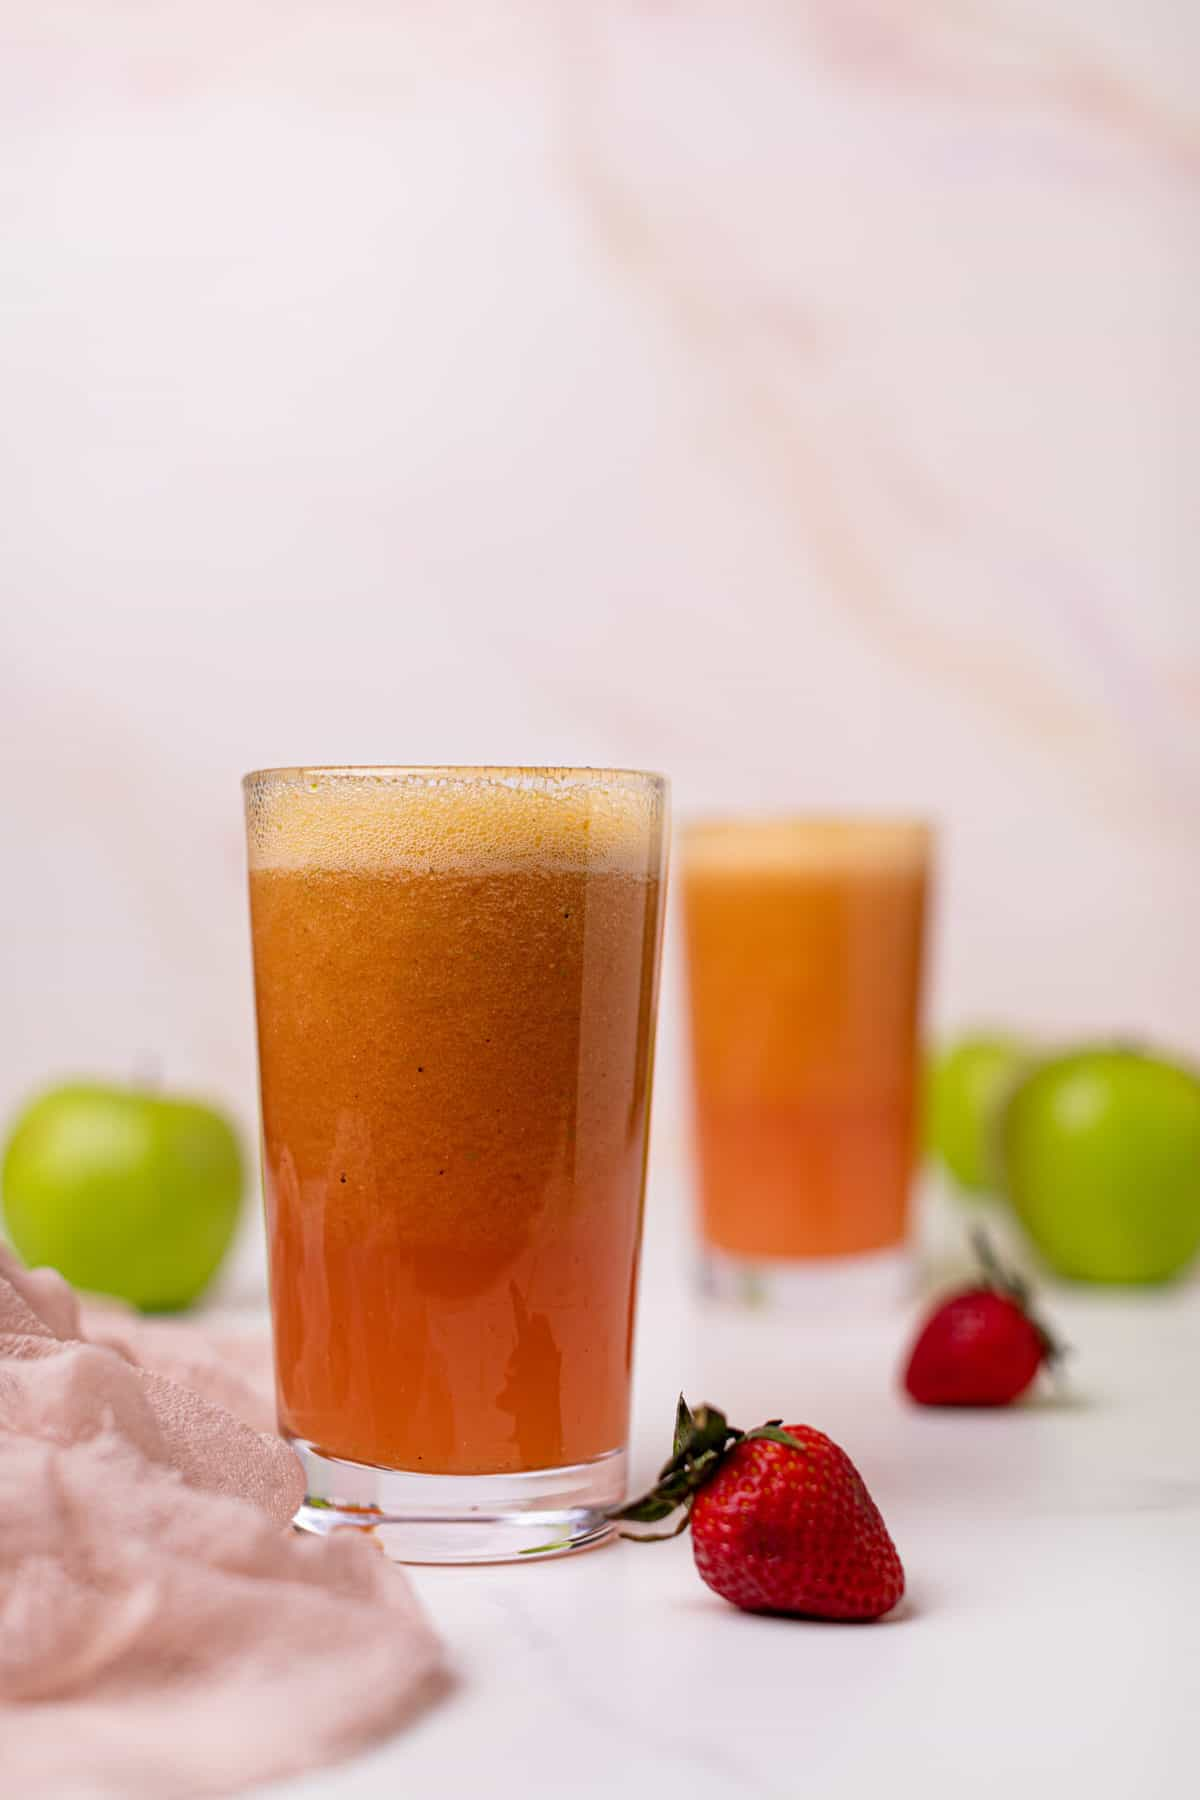 Apple Citrus Strawberry Juice in two glasses with strawberries